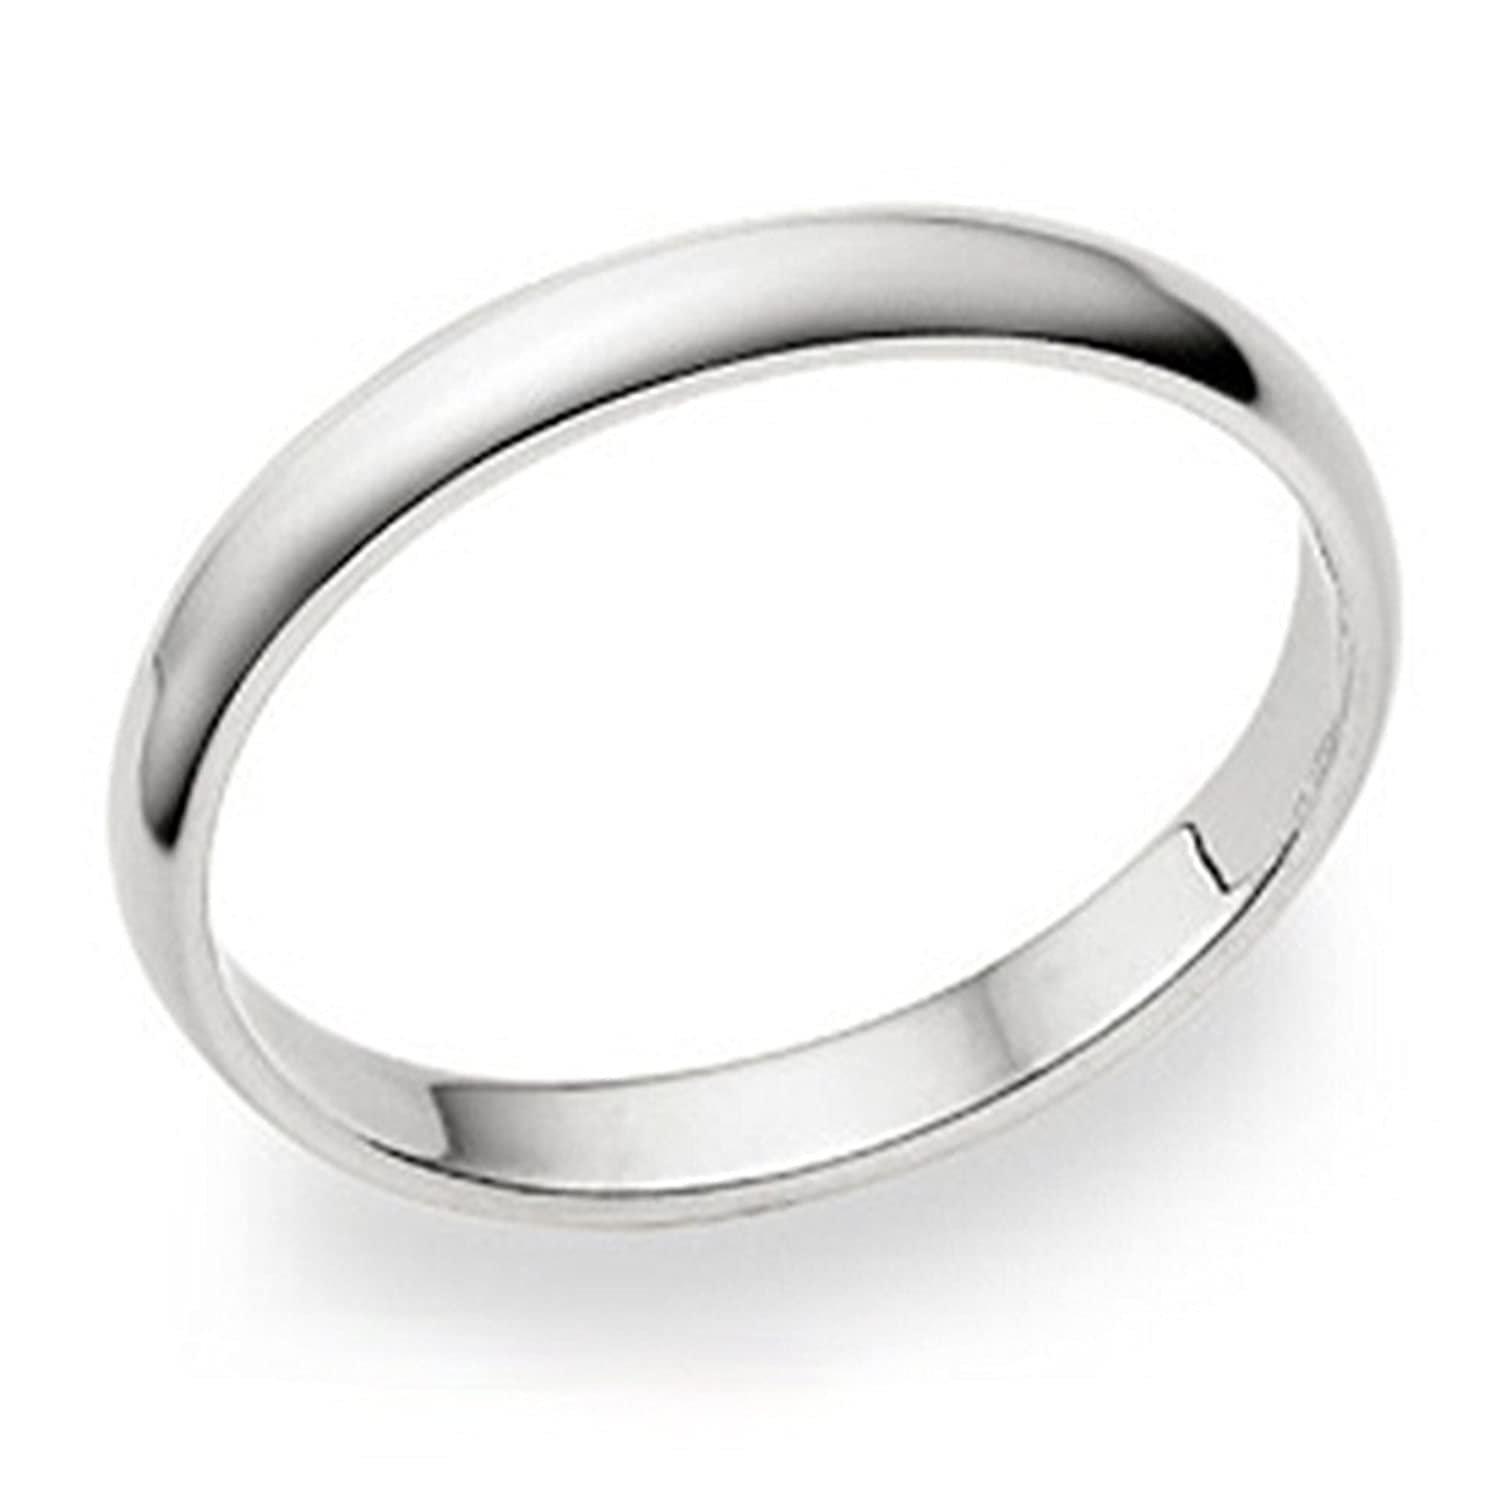 sterling next previous custom product jewelry soundwave silver ring wedding jewellery bands